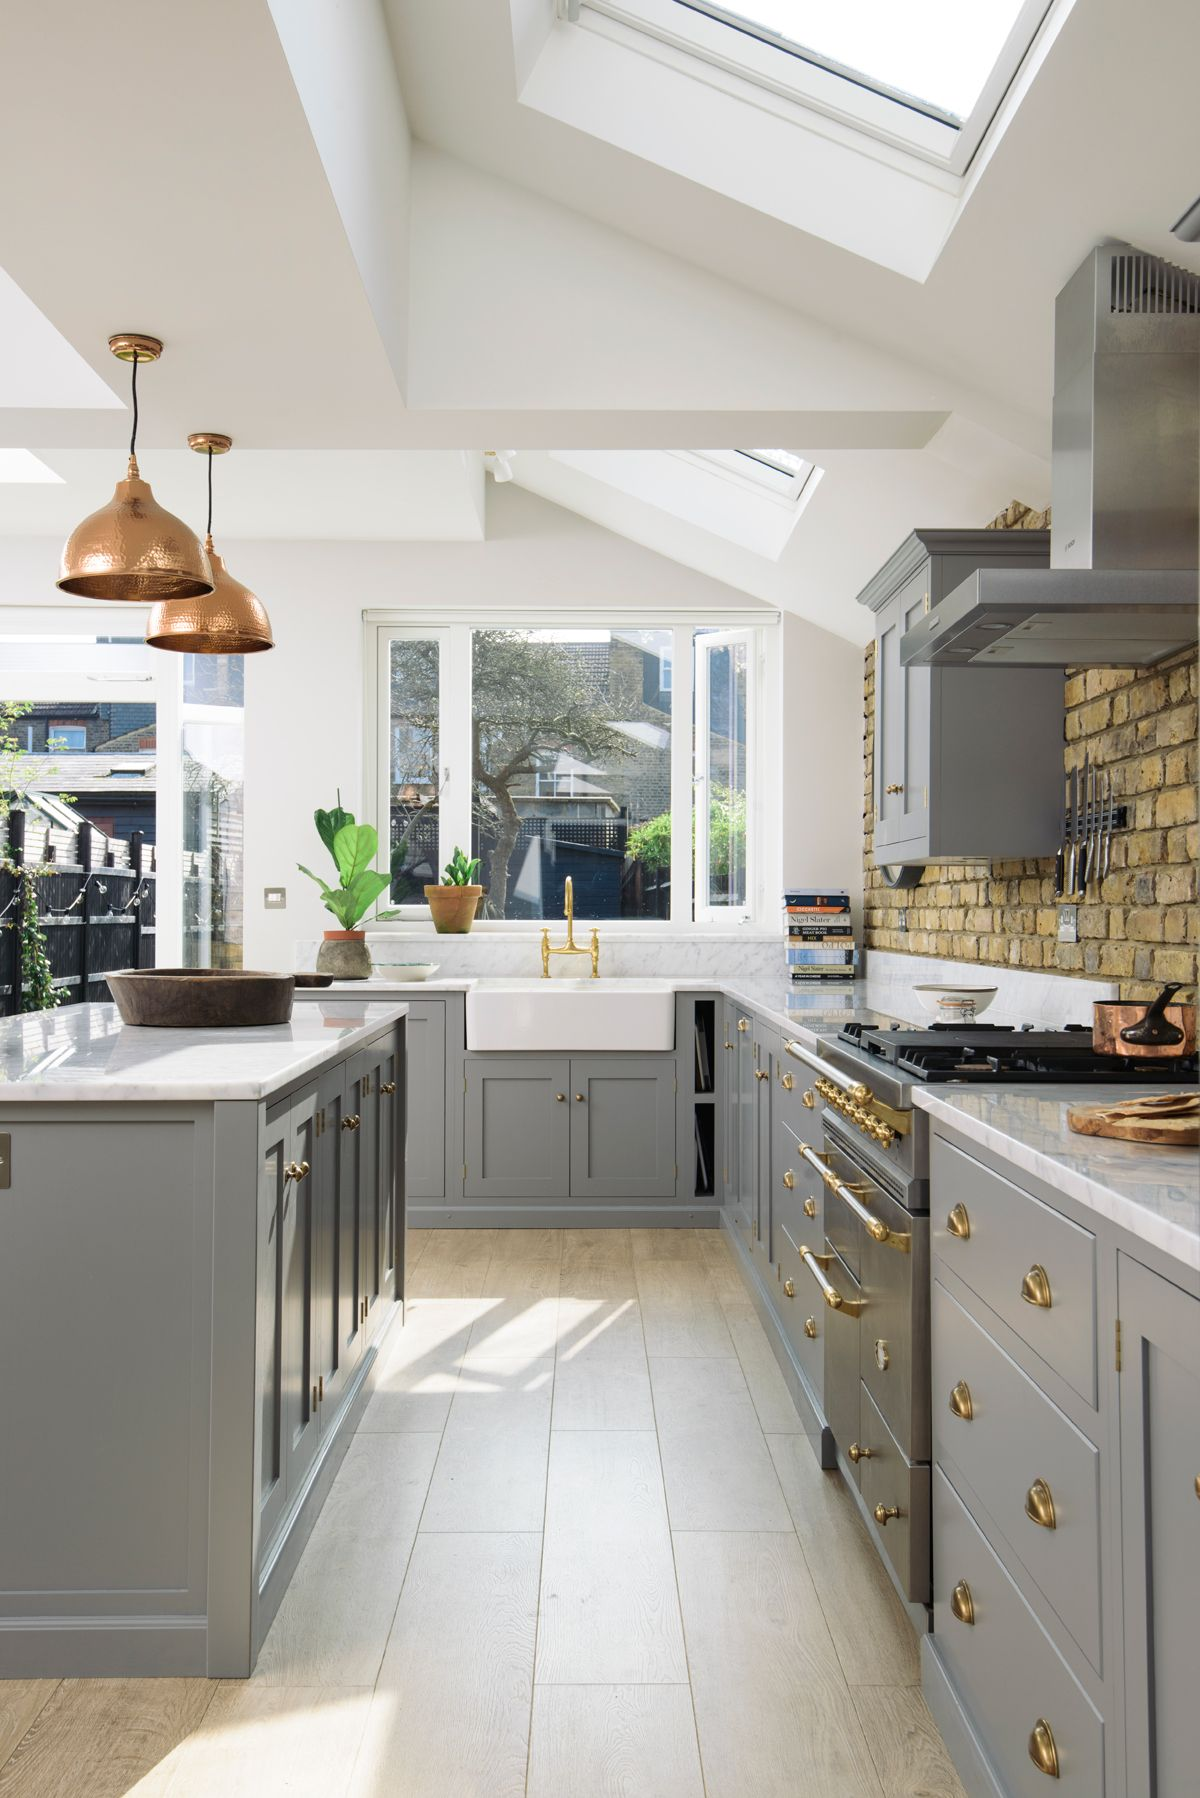 Diy Extend Kitchen Cabinets This Wonderful Kitchen Extension In South London Was